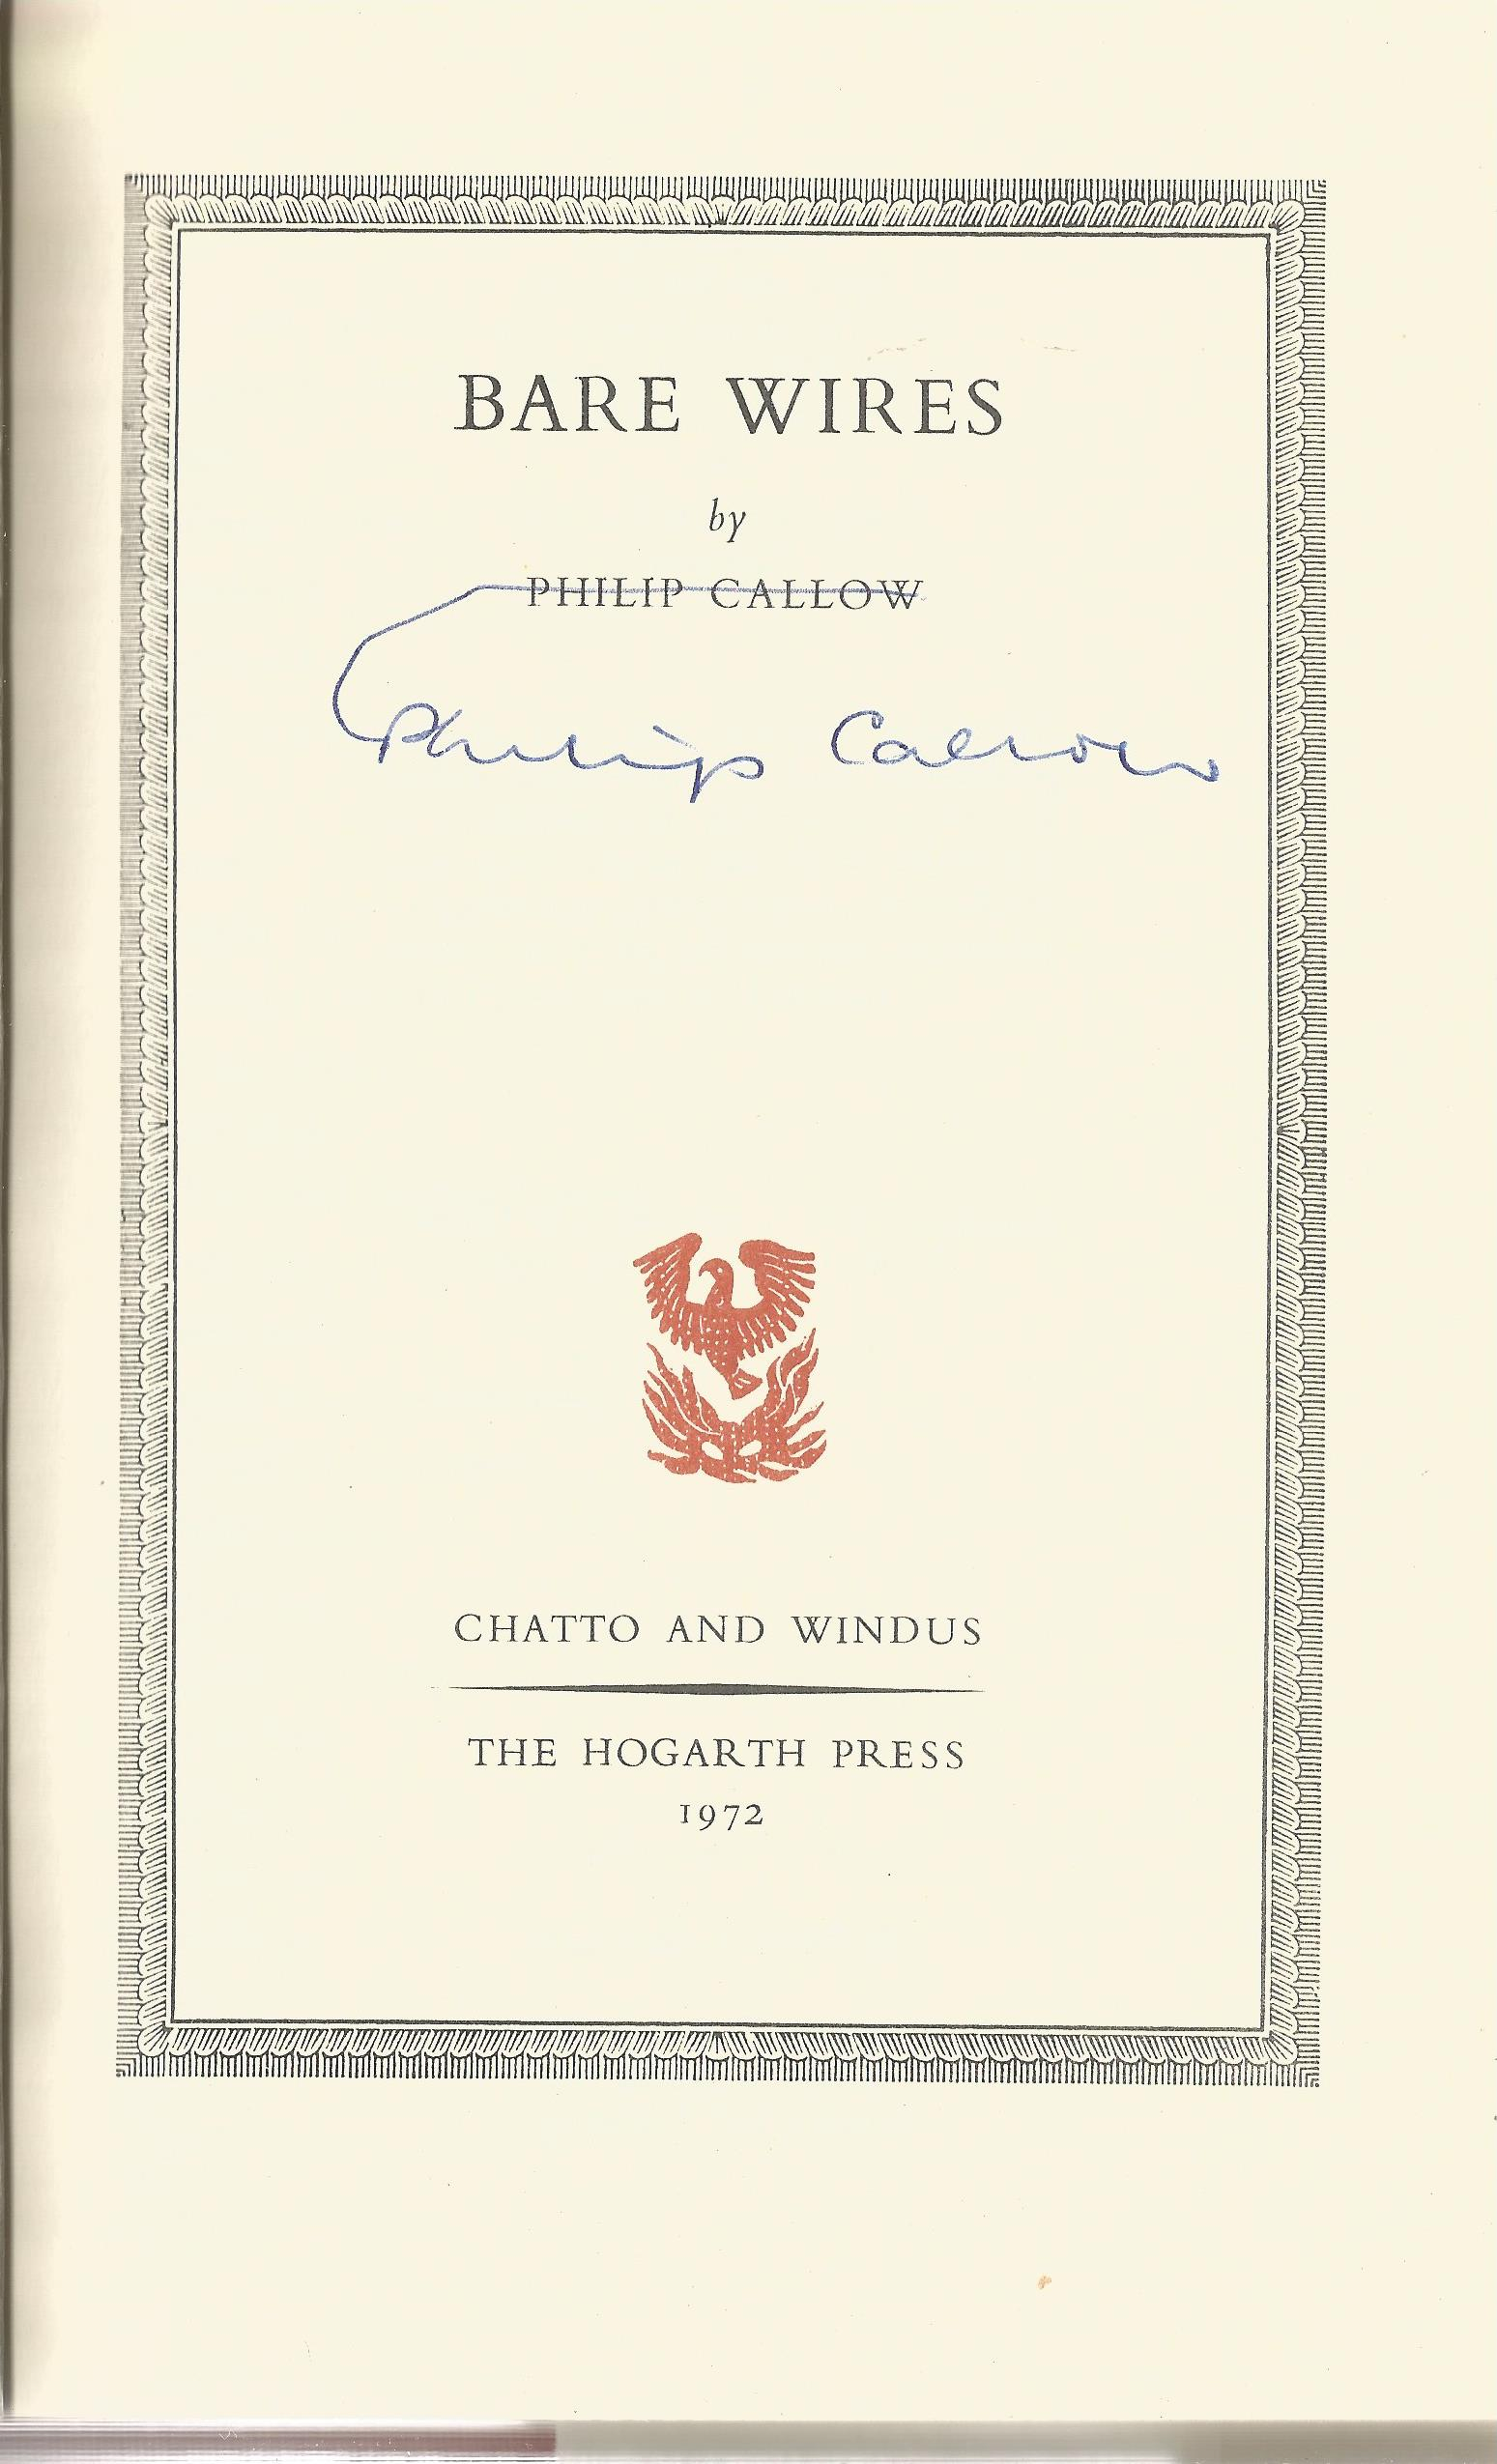 Philip Callow Hardback Book Bare Wires signed by the Author on the Title Page Includes four cards - Image 2 of 3